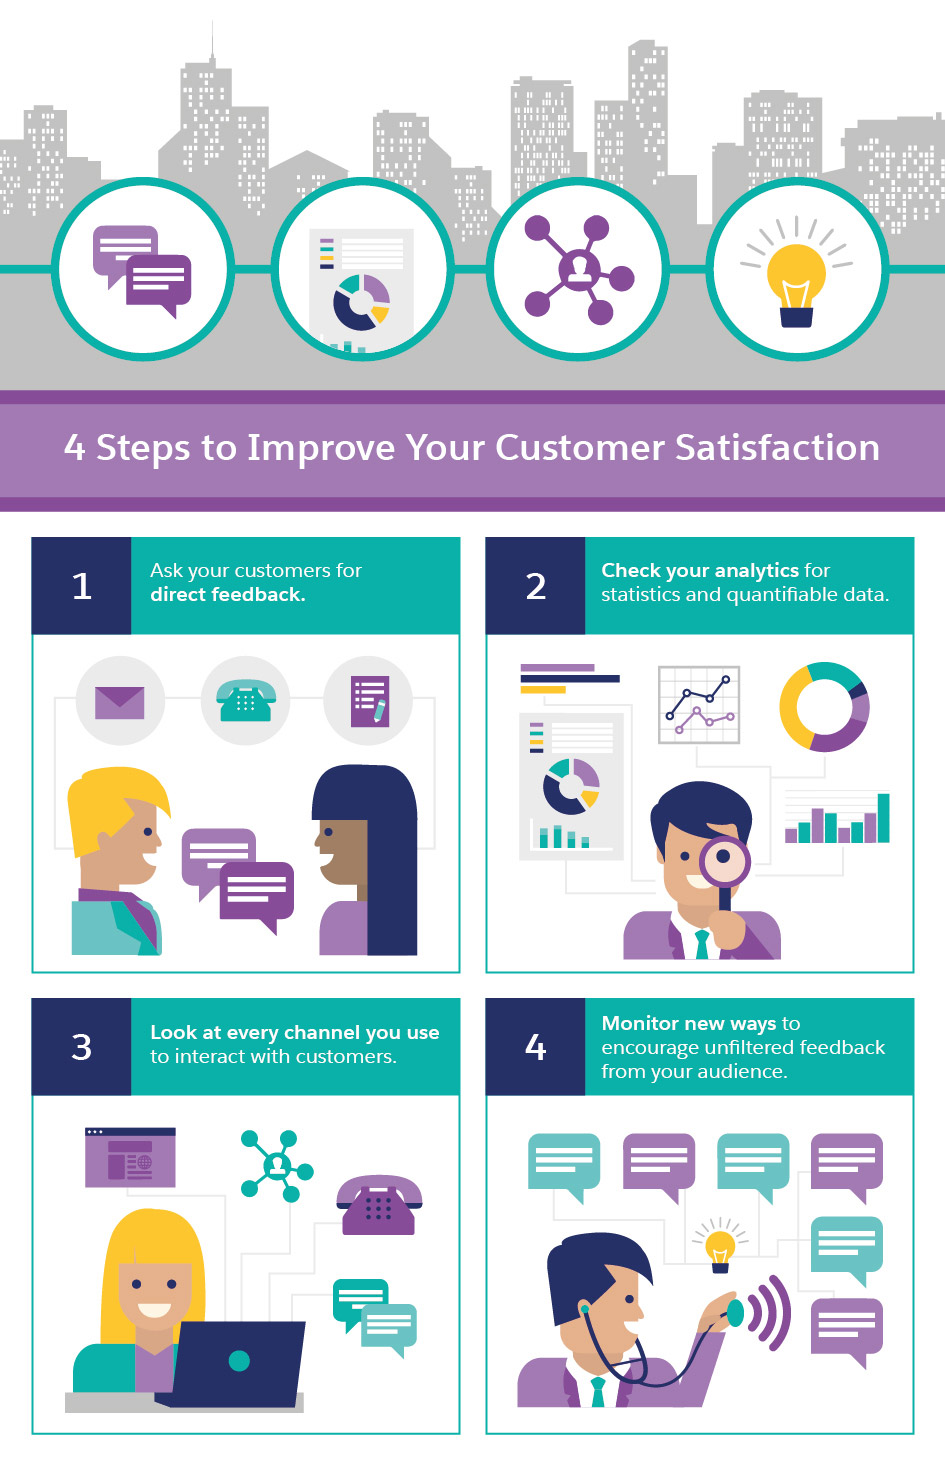 4 Steps to Improve Your Customer Satisfaction